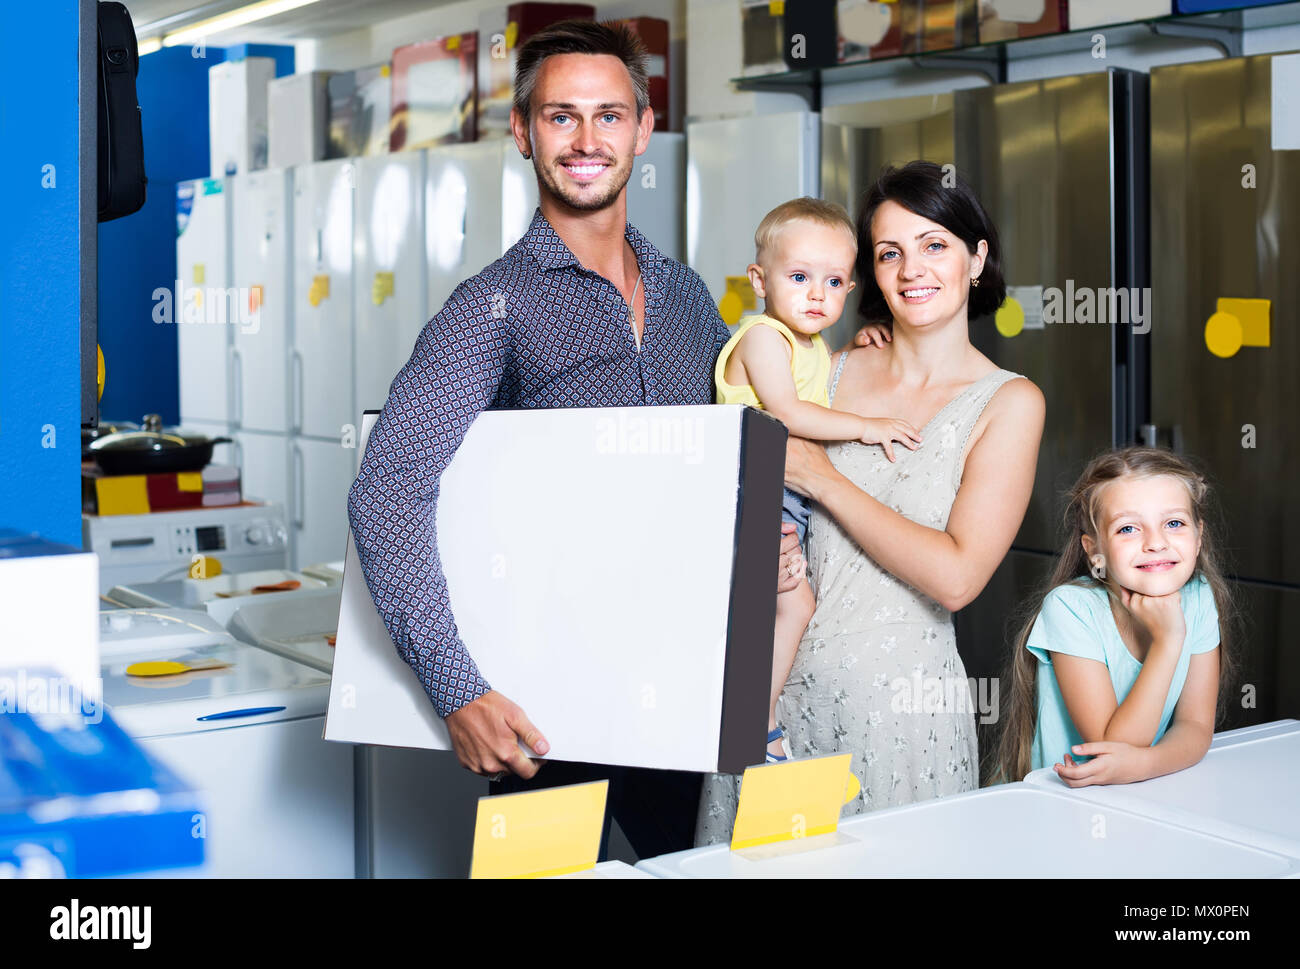 smiling american parents with two children shopping new electronics and holding box in shop of household appliances - Stock Image